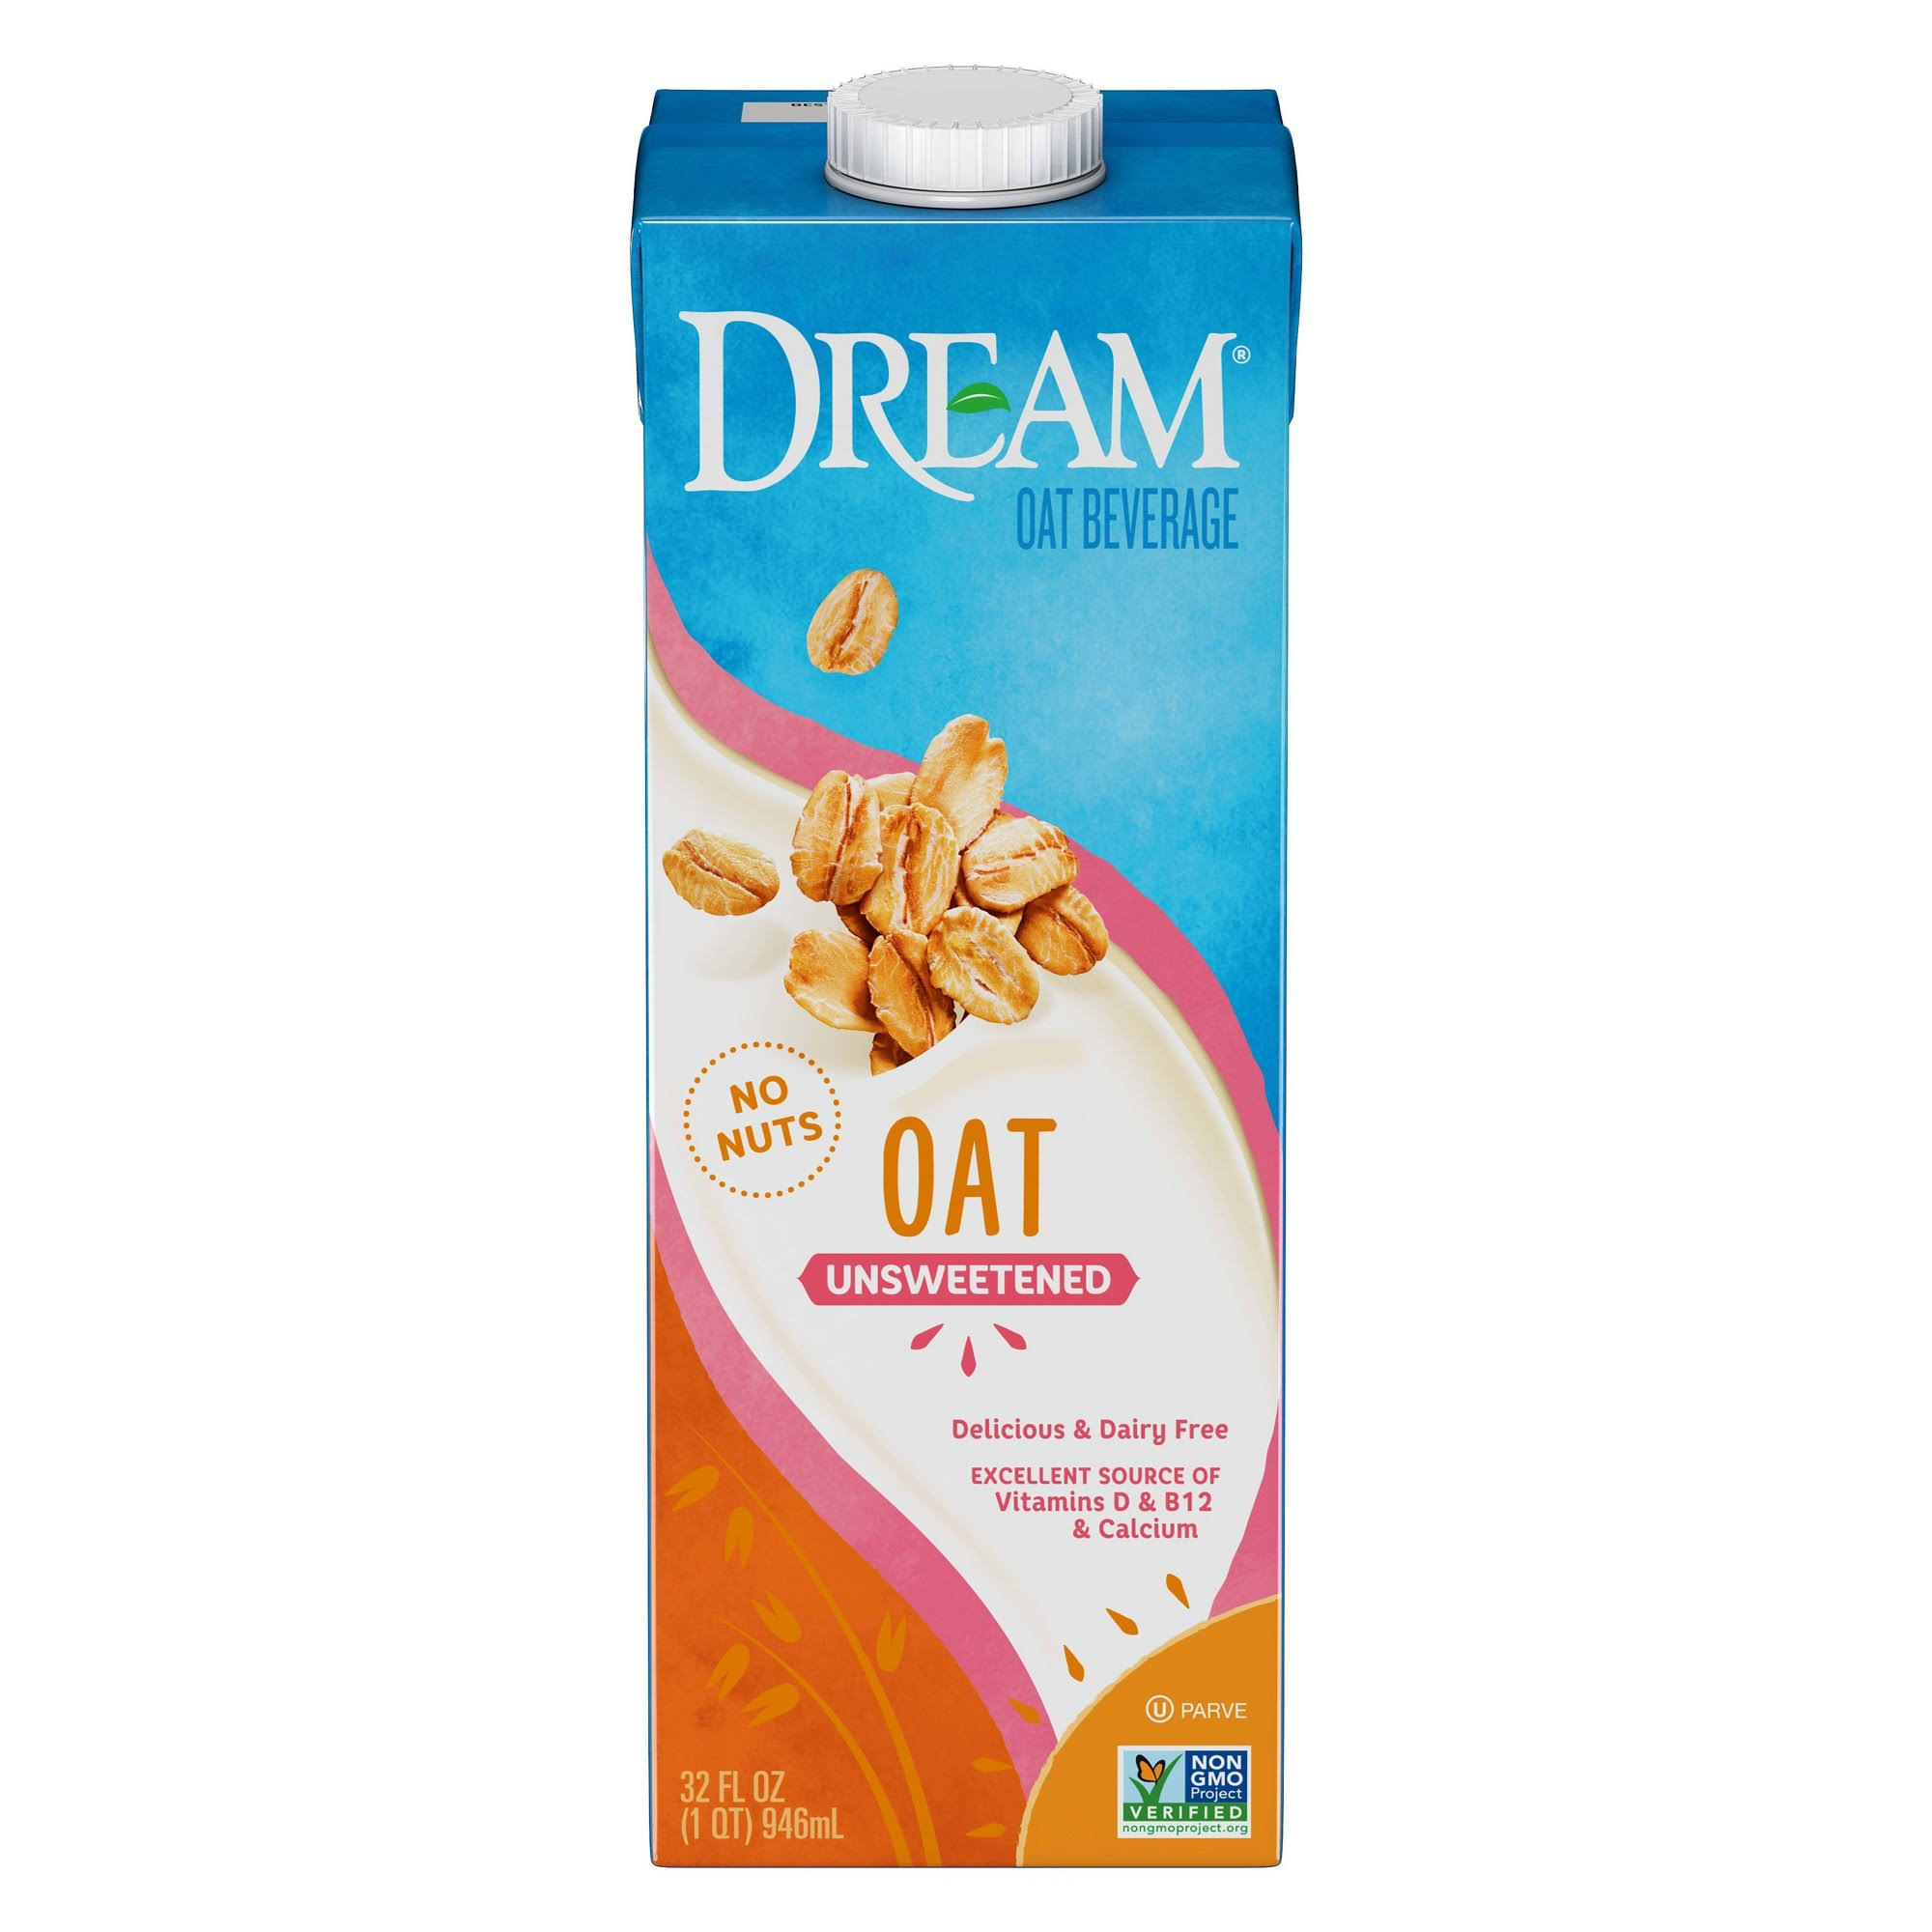 Dream Oat Beverage Unsweetened - 32 fl oz